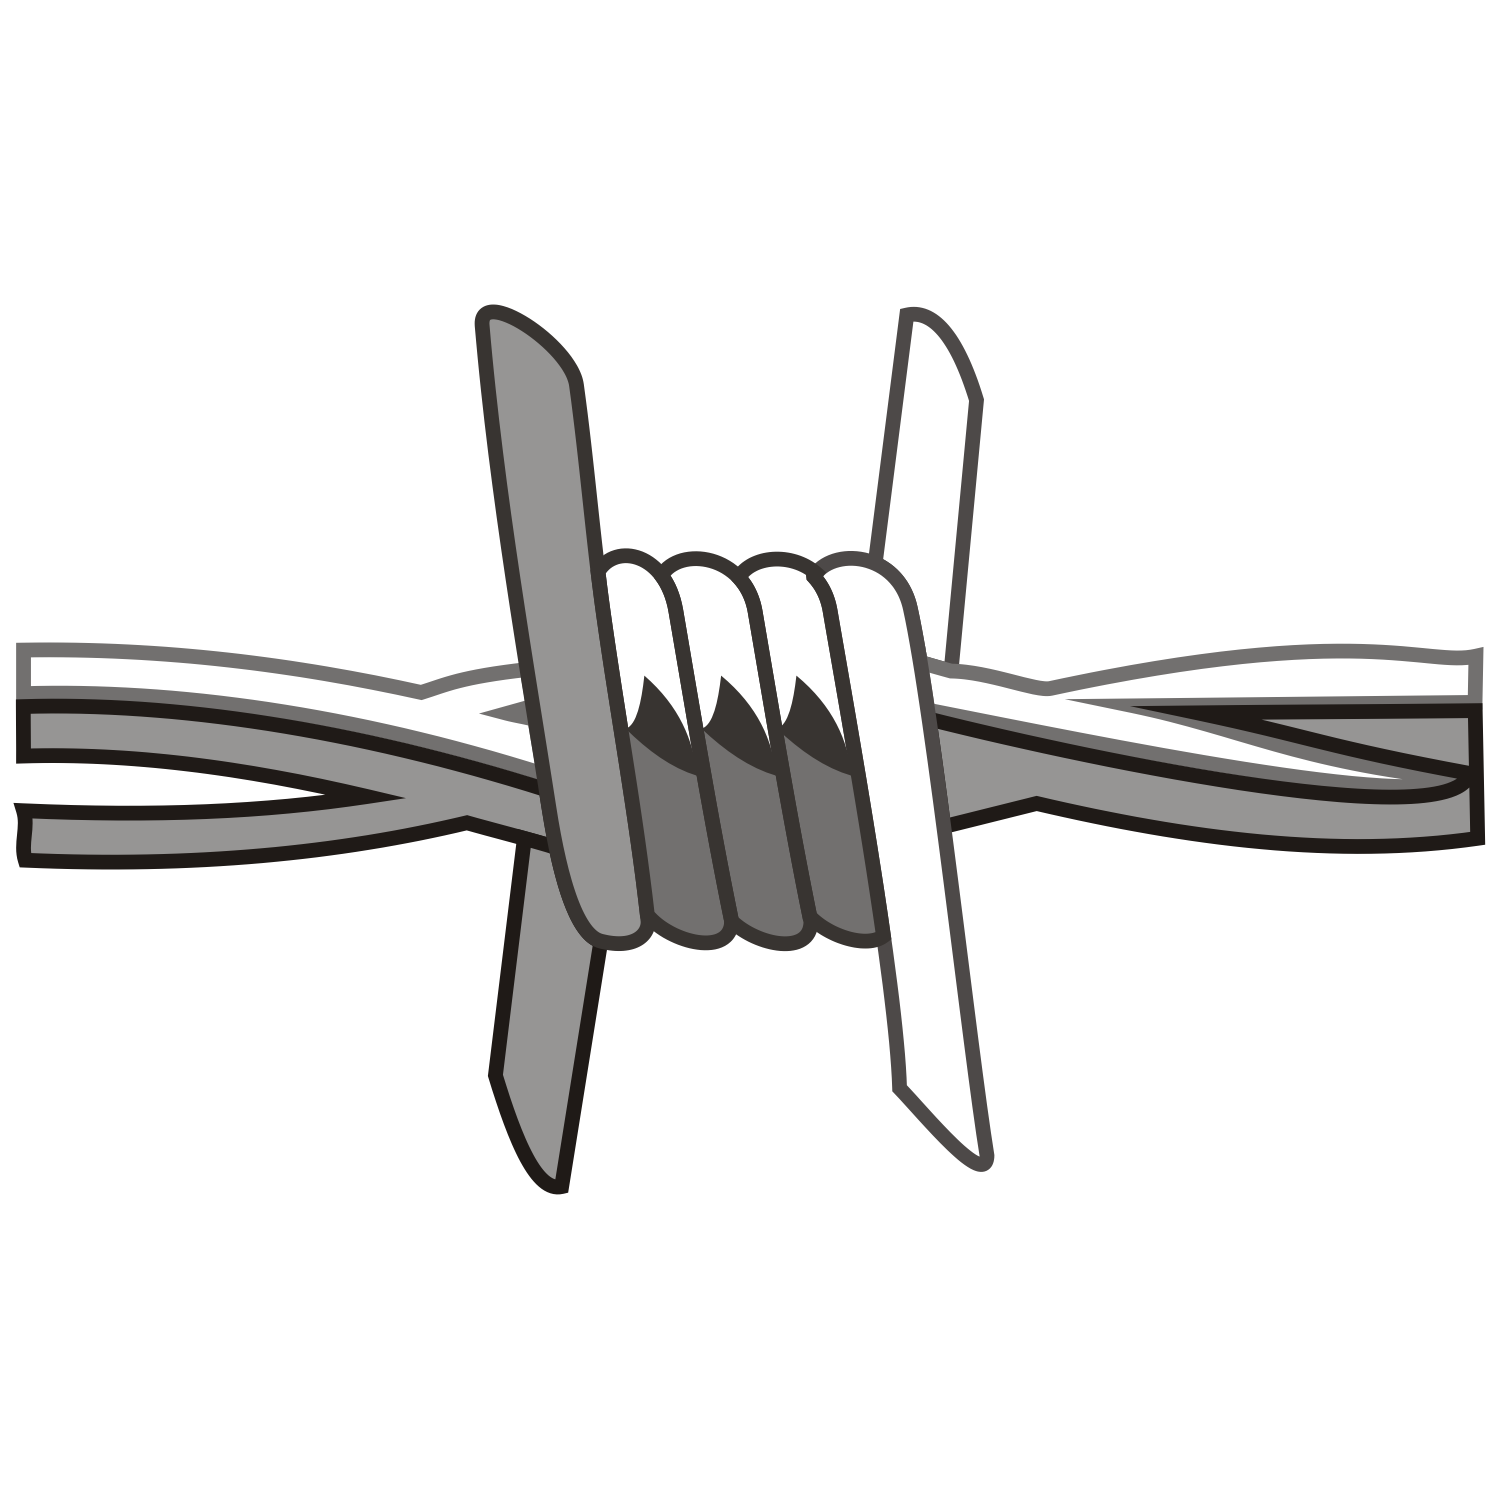 Barb Wire clipart black and white Free wire Barbed Vector Barbed